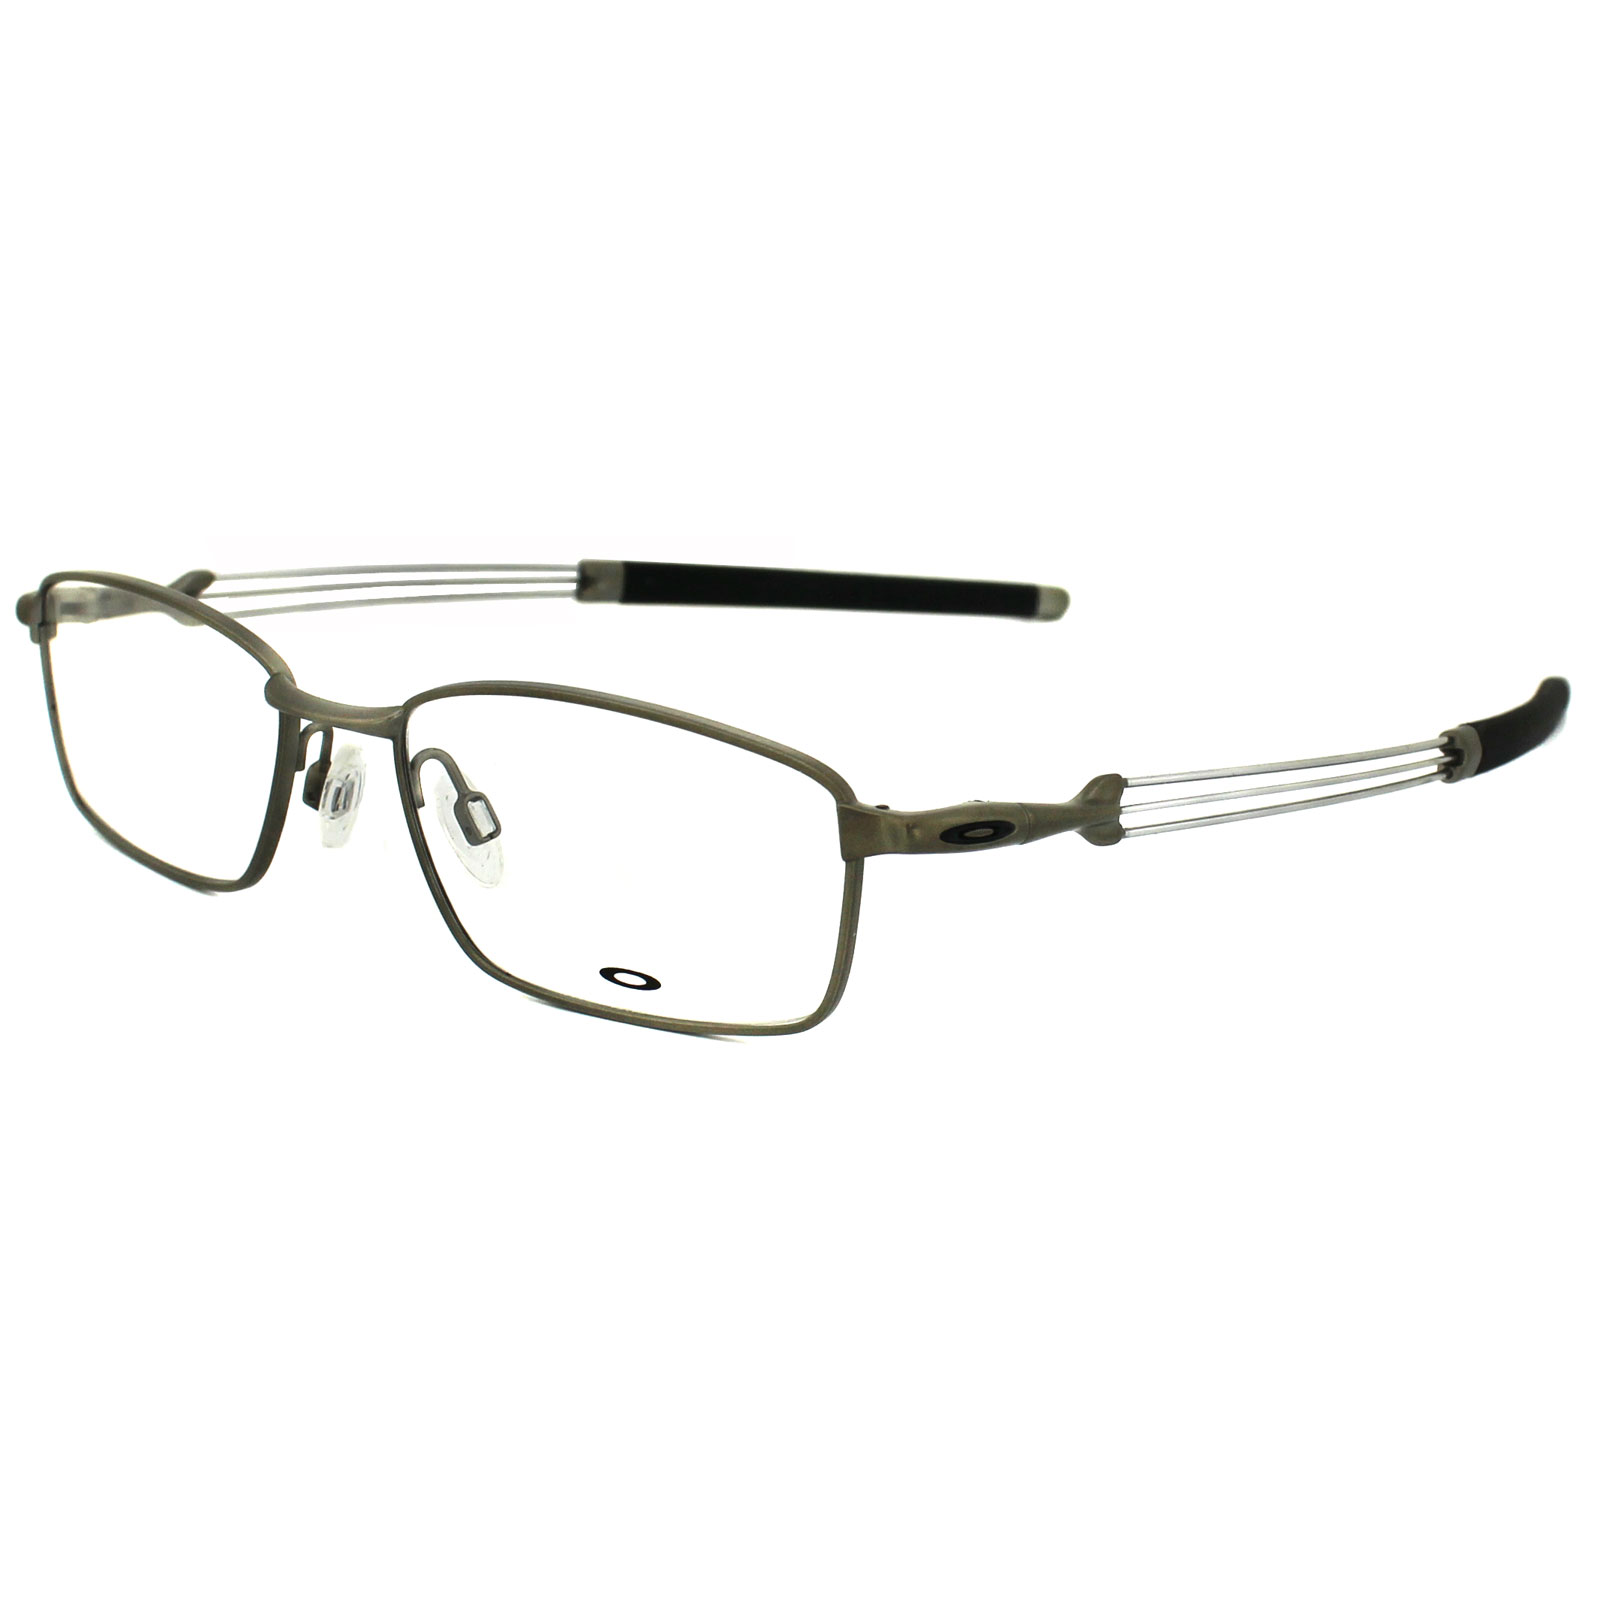 Oakley Glasses Frames Catapult 5092-03 Light Silver Clear ...